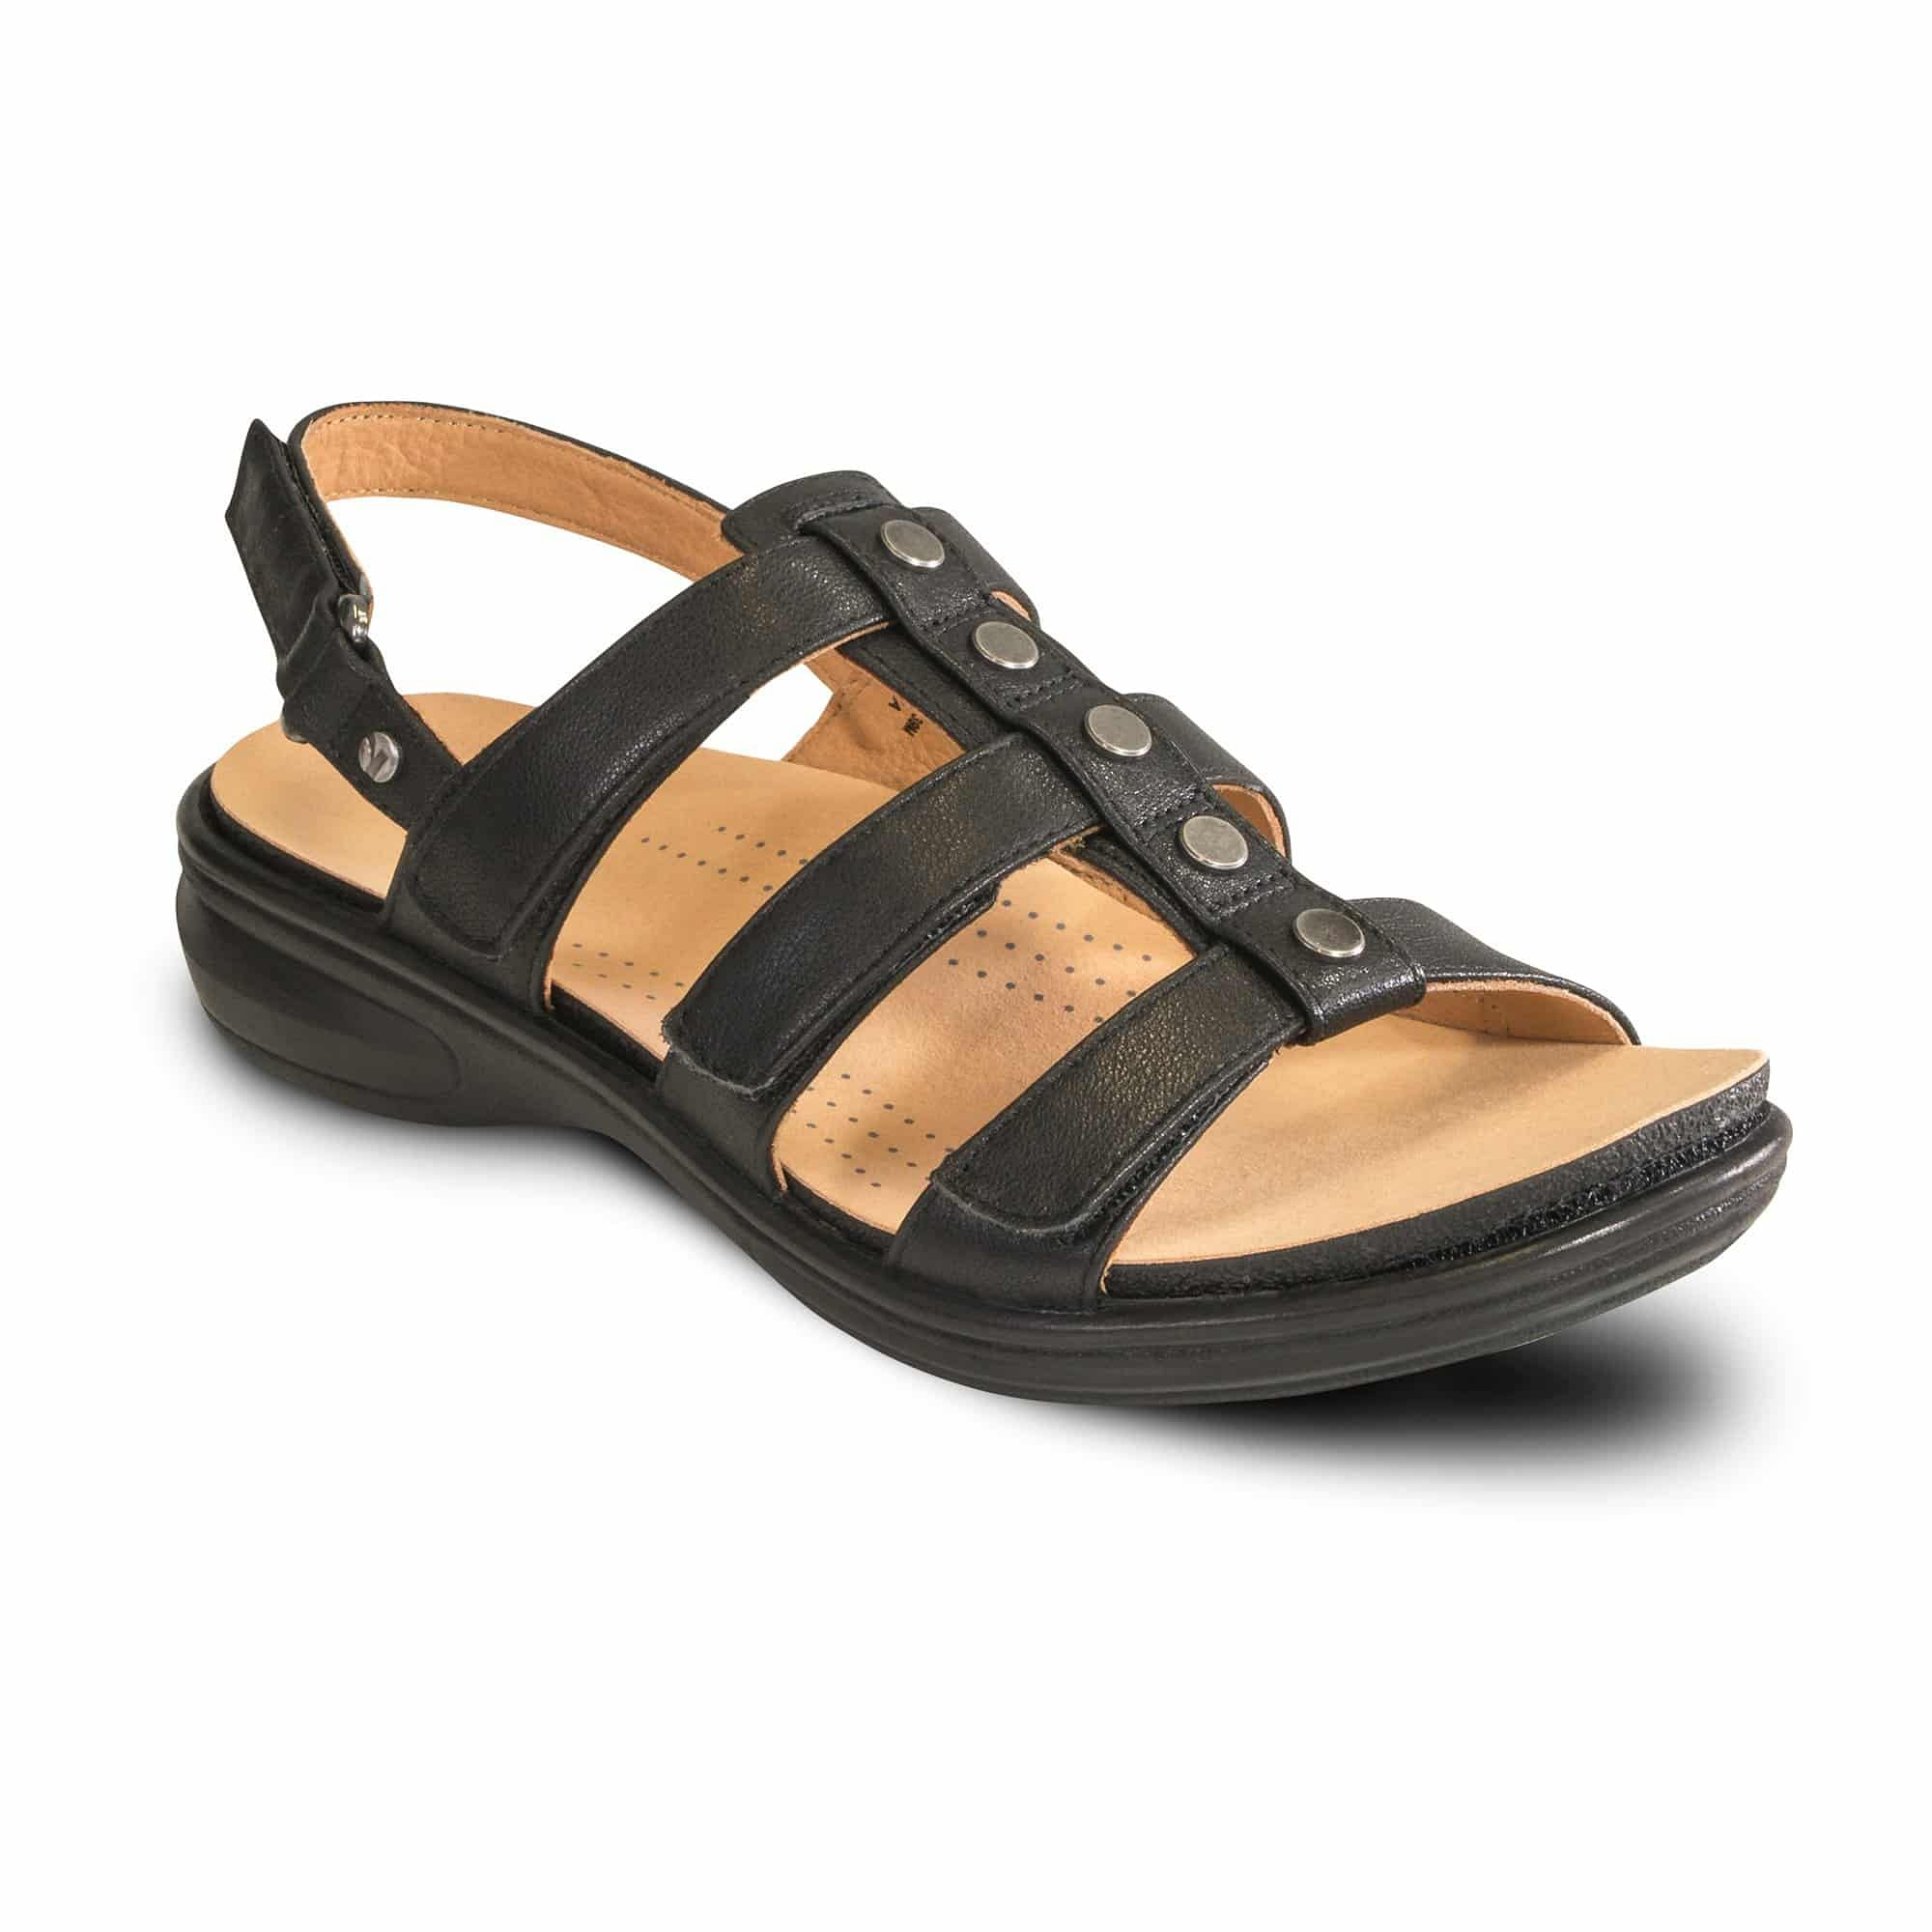 REVERE Toledo Sandals with Arch Support